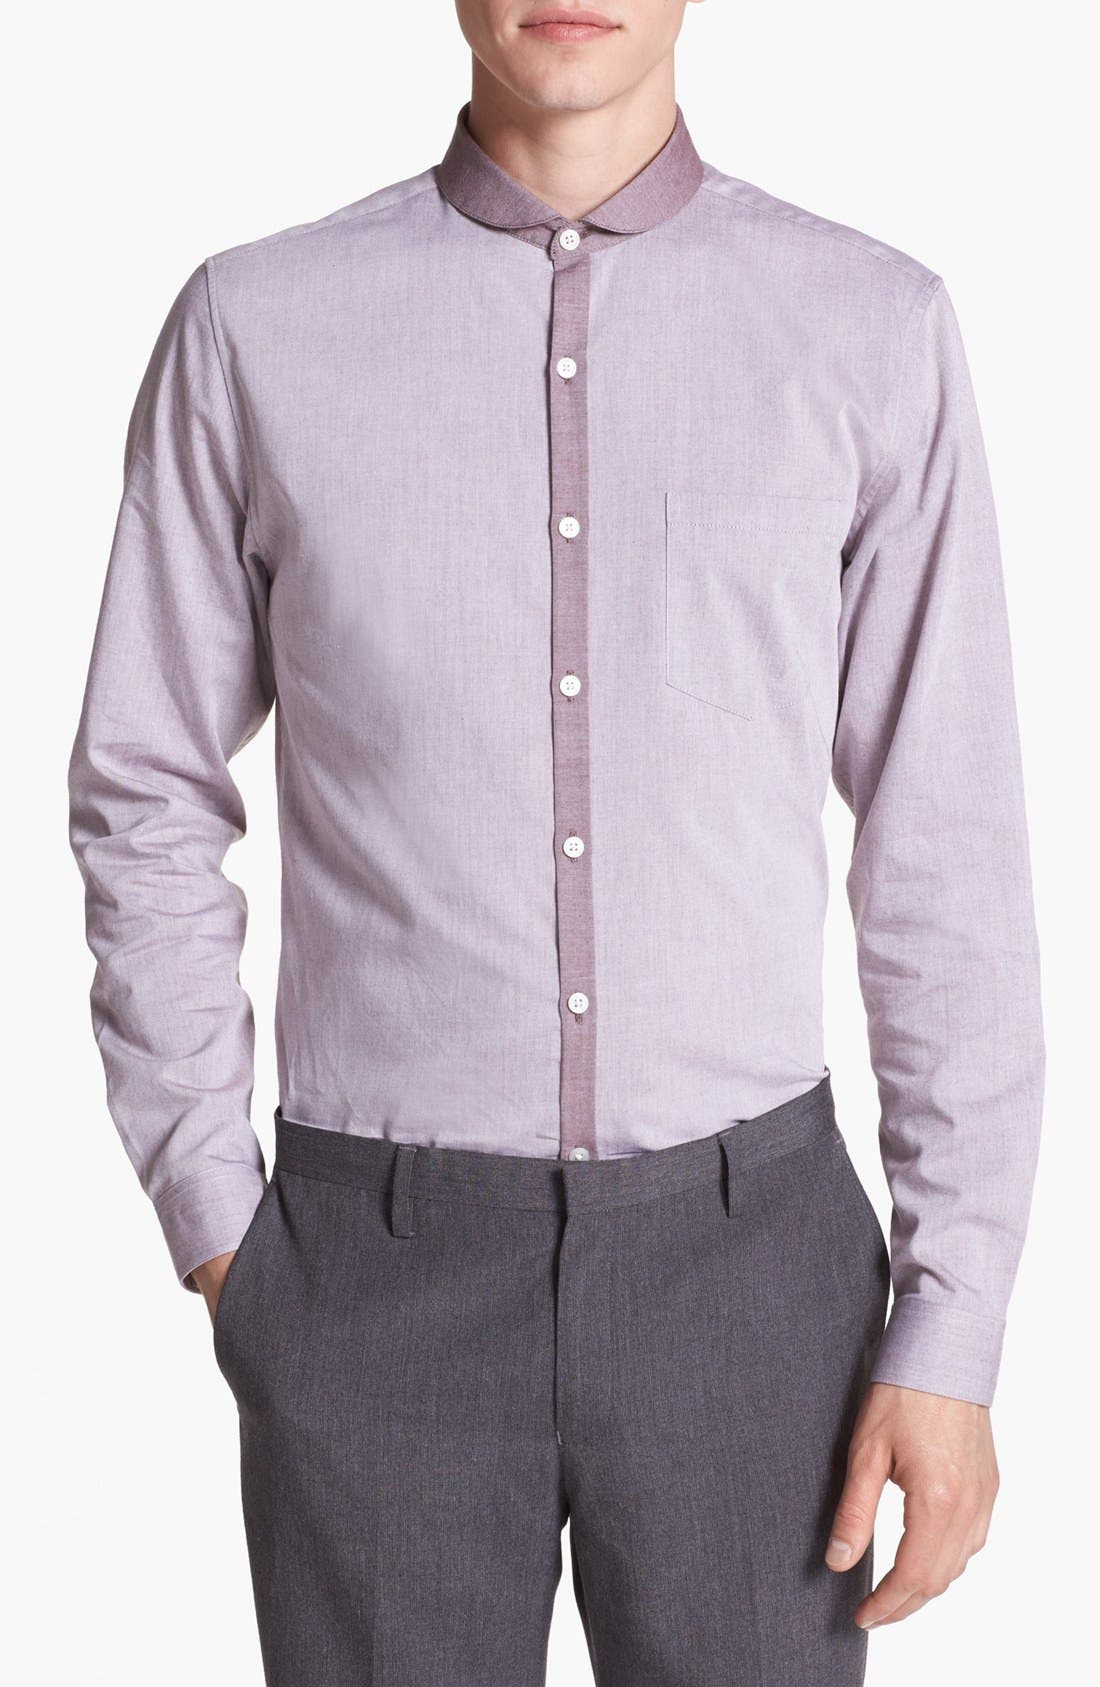 Alternate Image 1 Selected - Topman 'Smart' Round Collar Dress Shirt